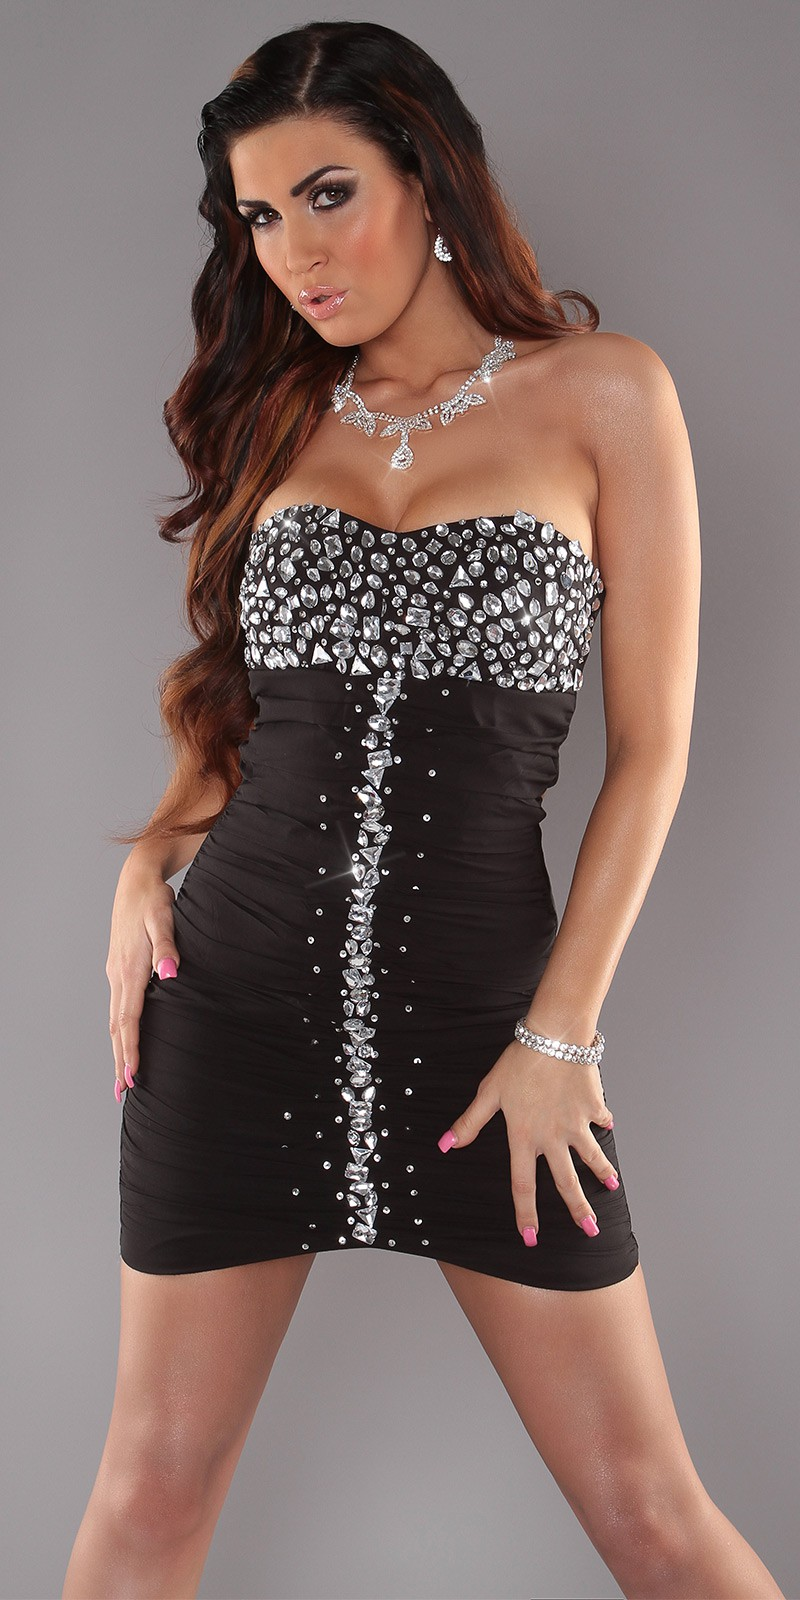 Black Slinky Strapless Evening Dress With Rhinestones